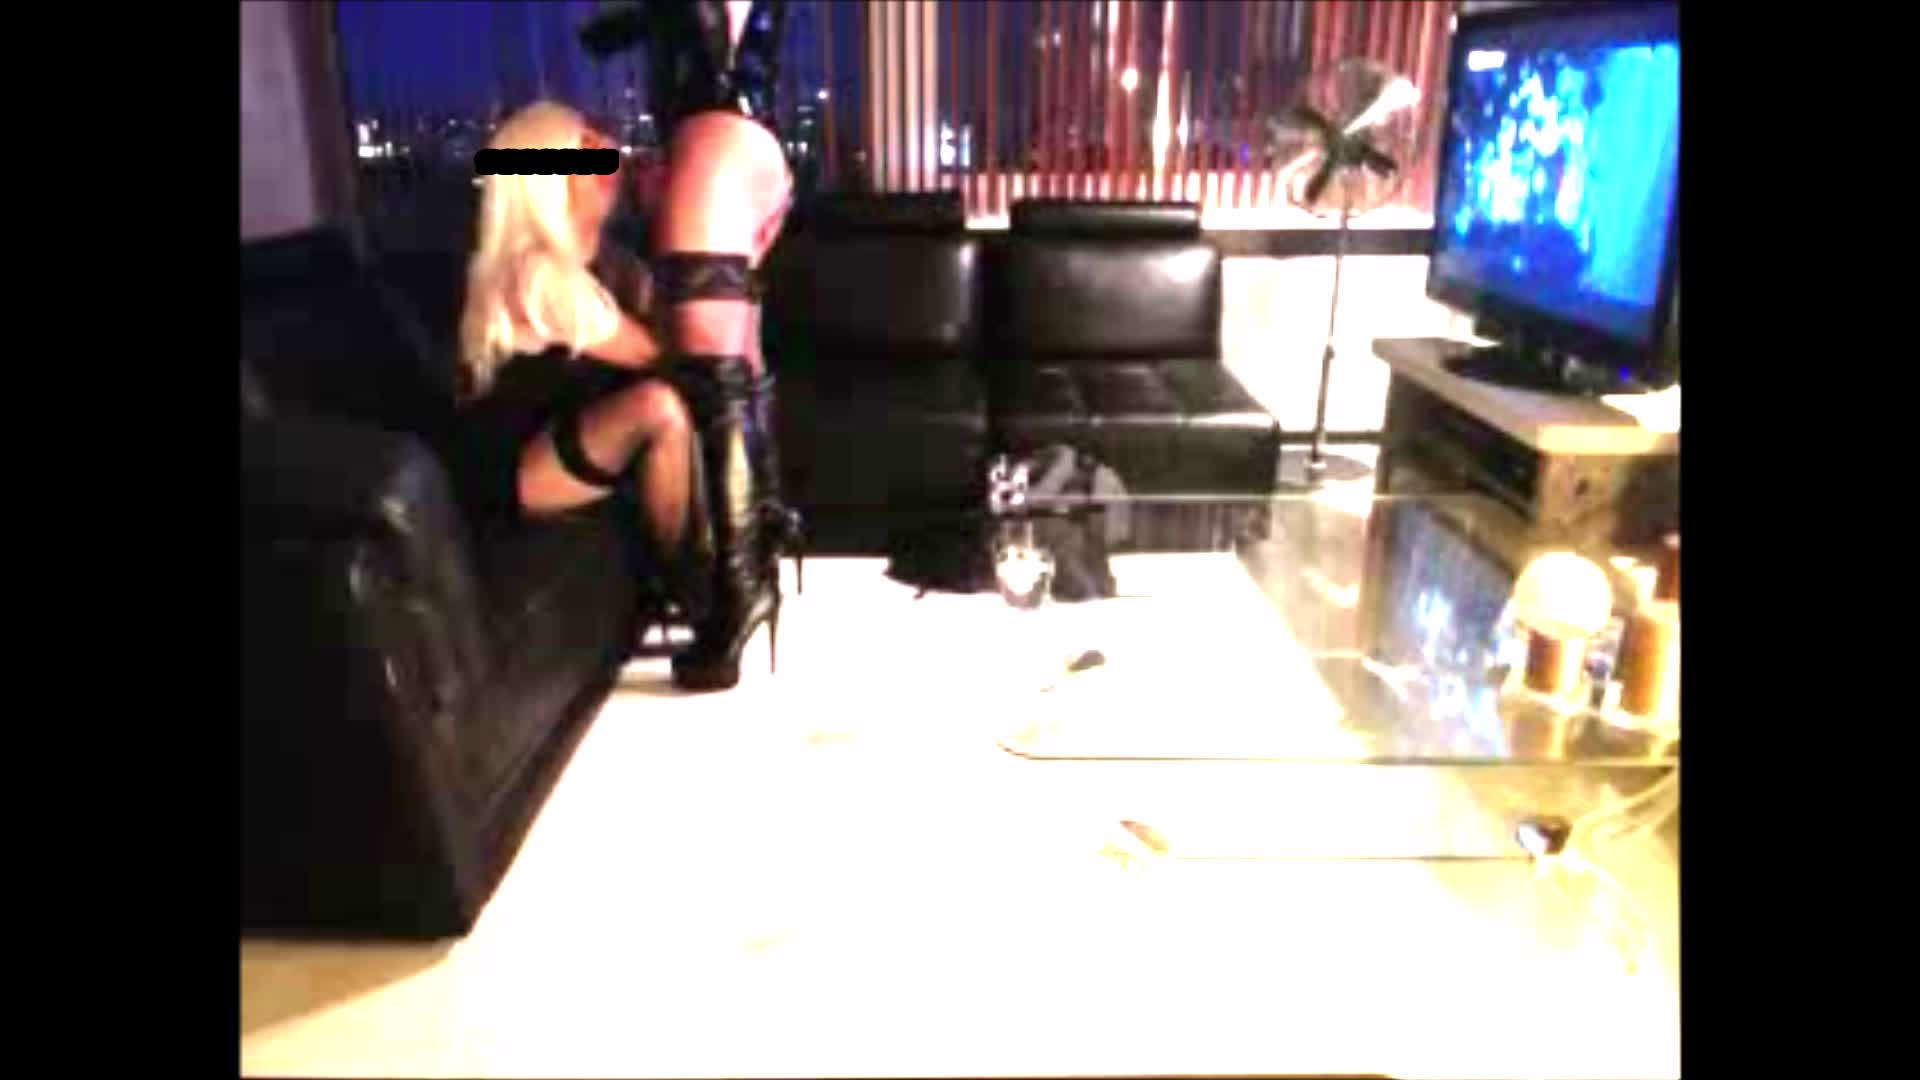 Quijada recommend Party pussy glamour trans